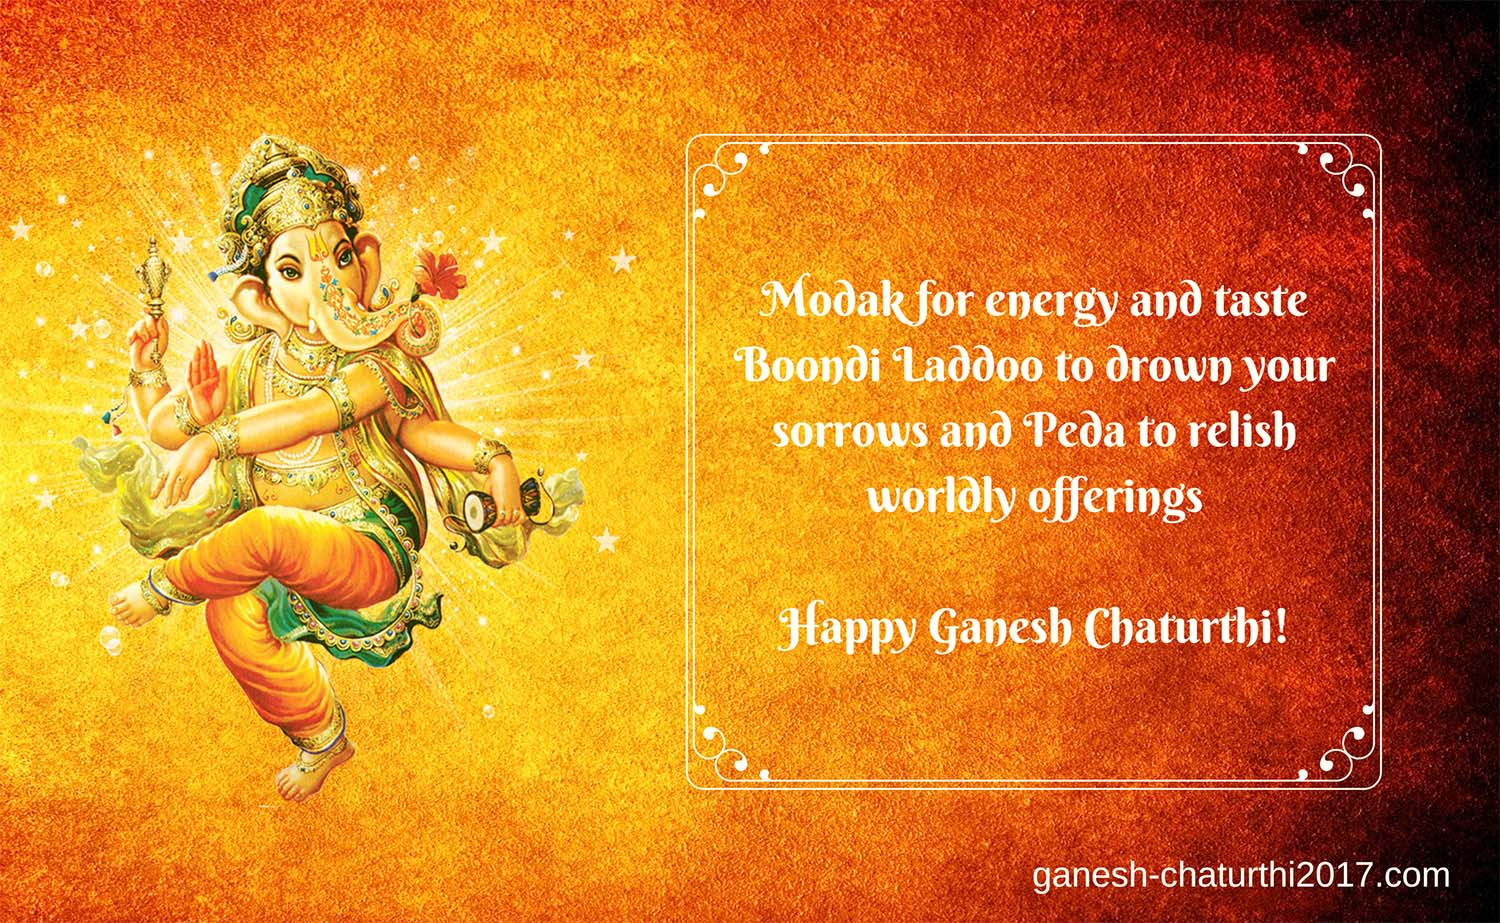 Happy vinayaka chavithi wishes in English